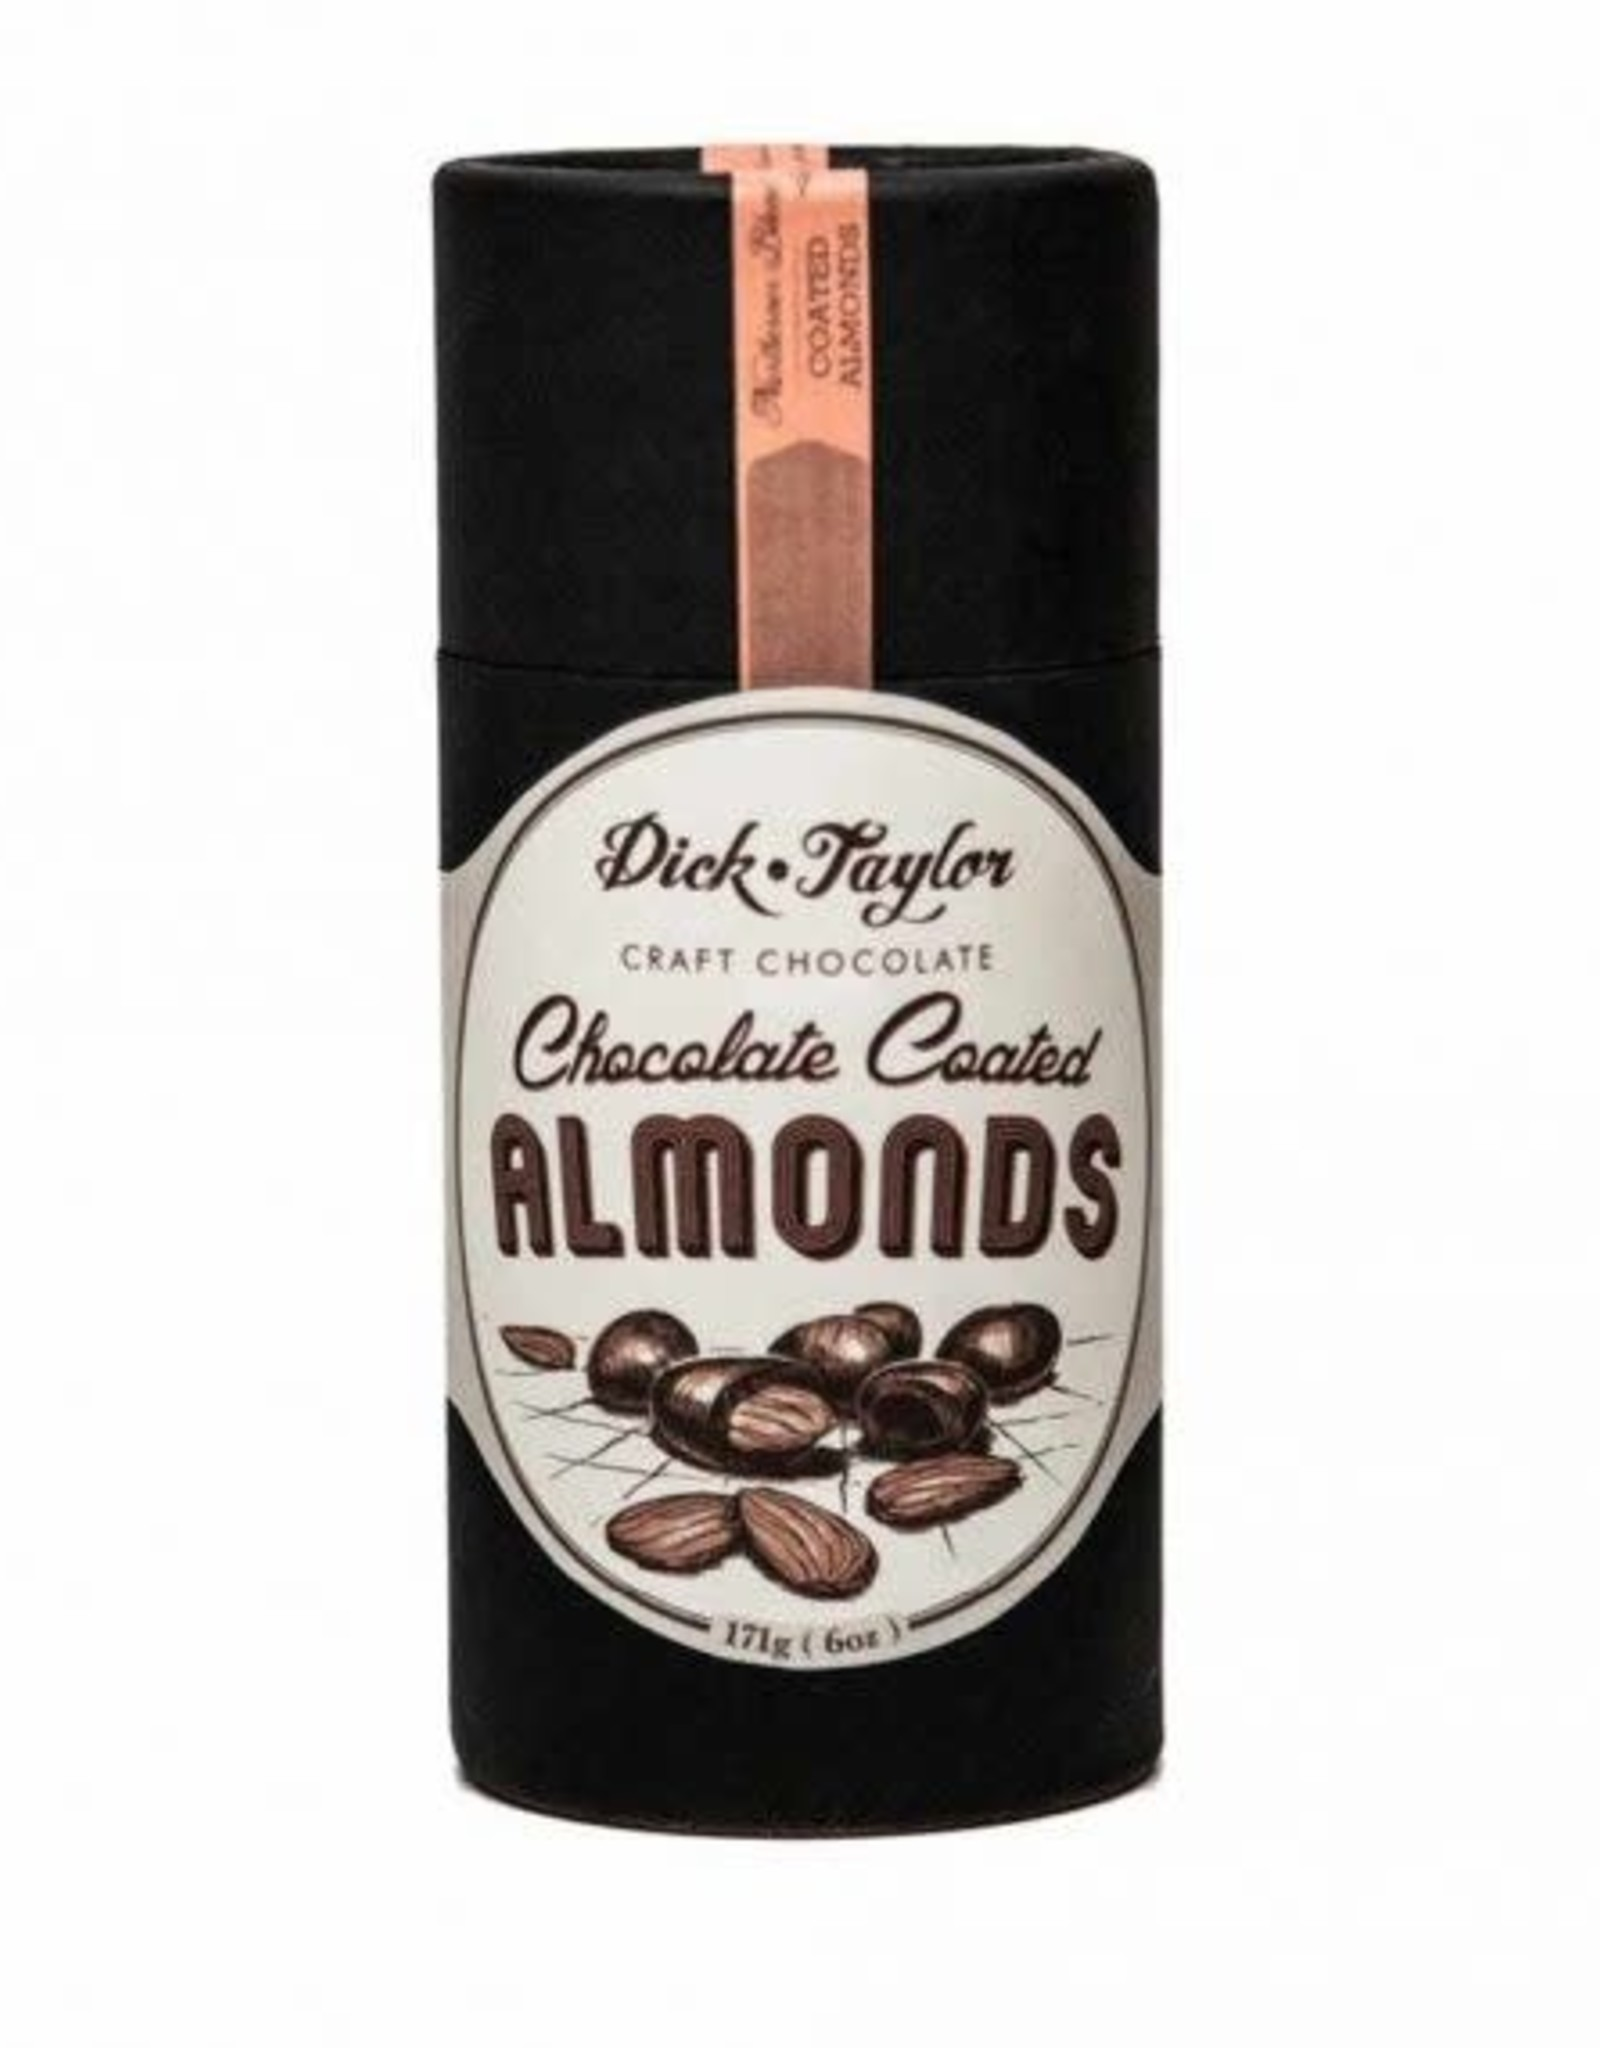 DICK TAYLOR CANDY ALMONDS CHOCOLATE COATED